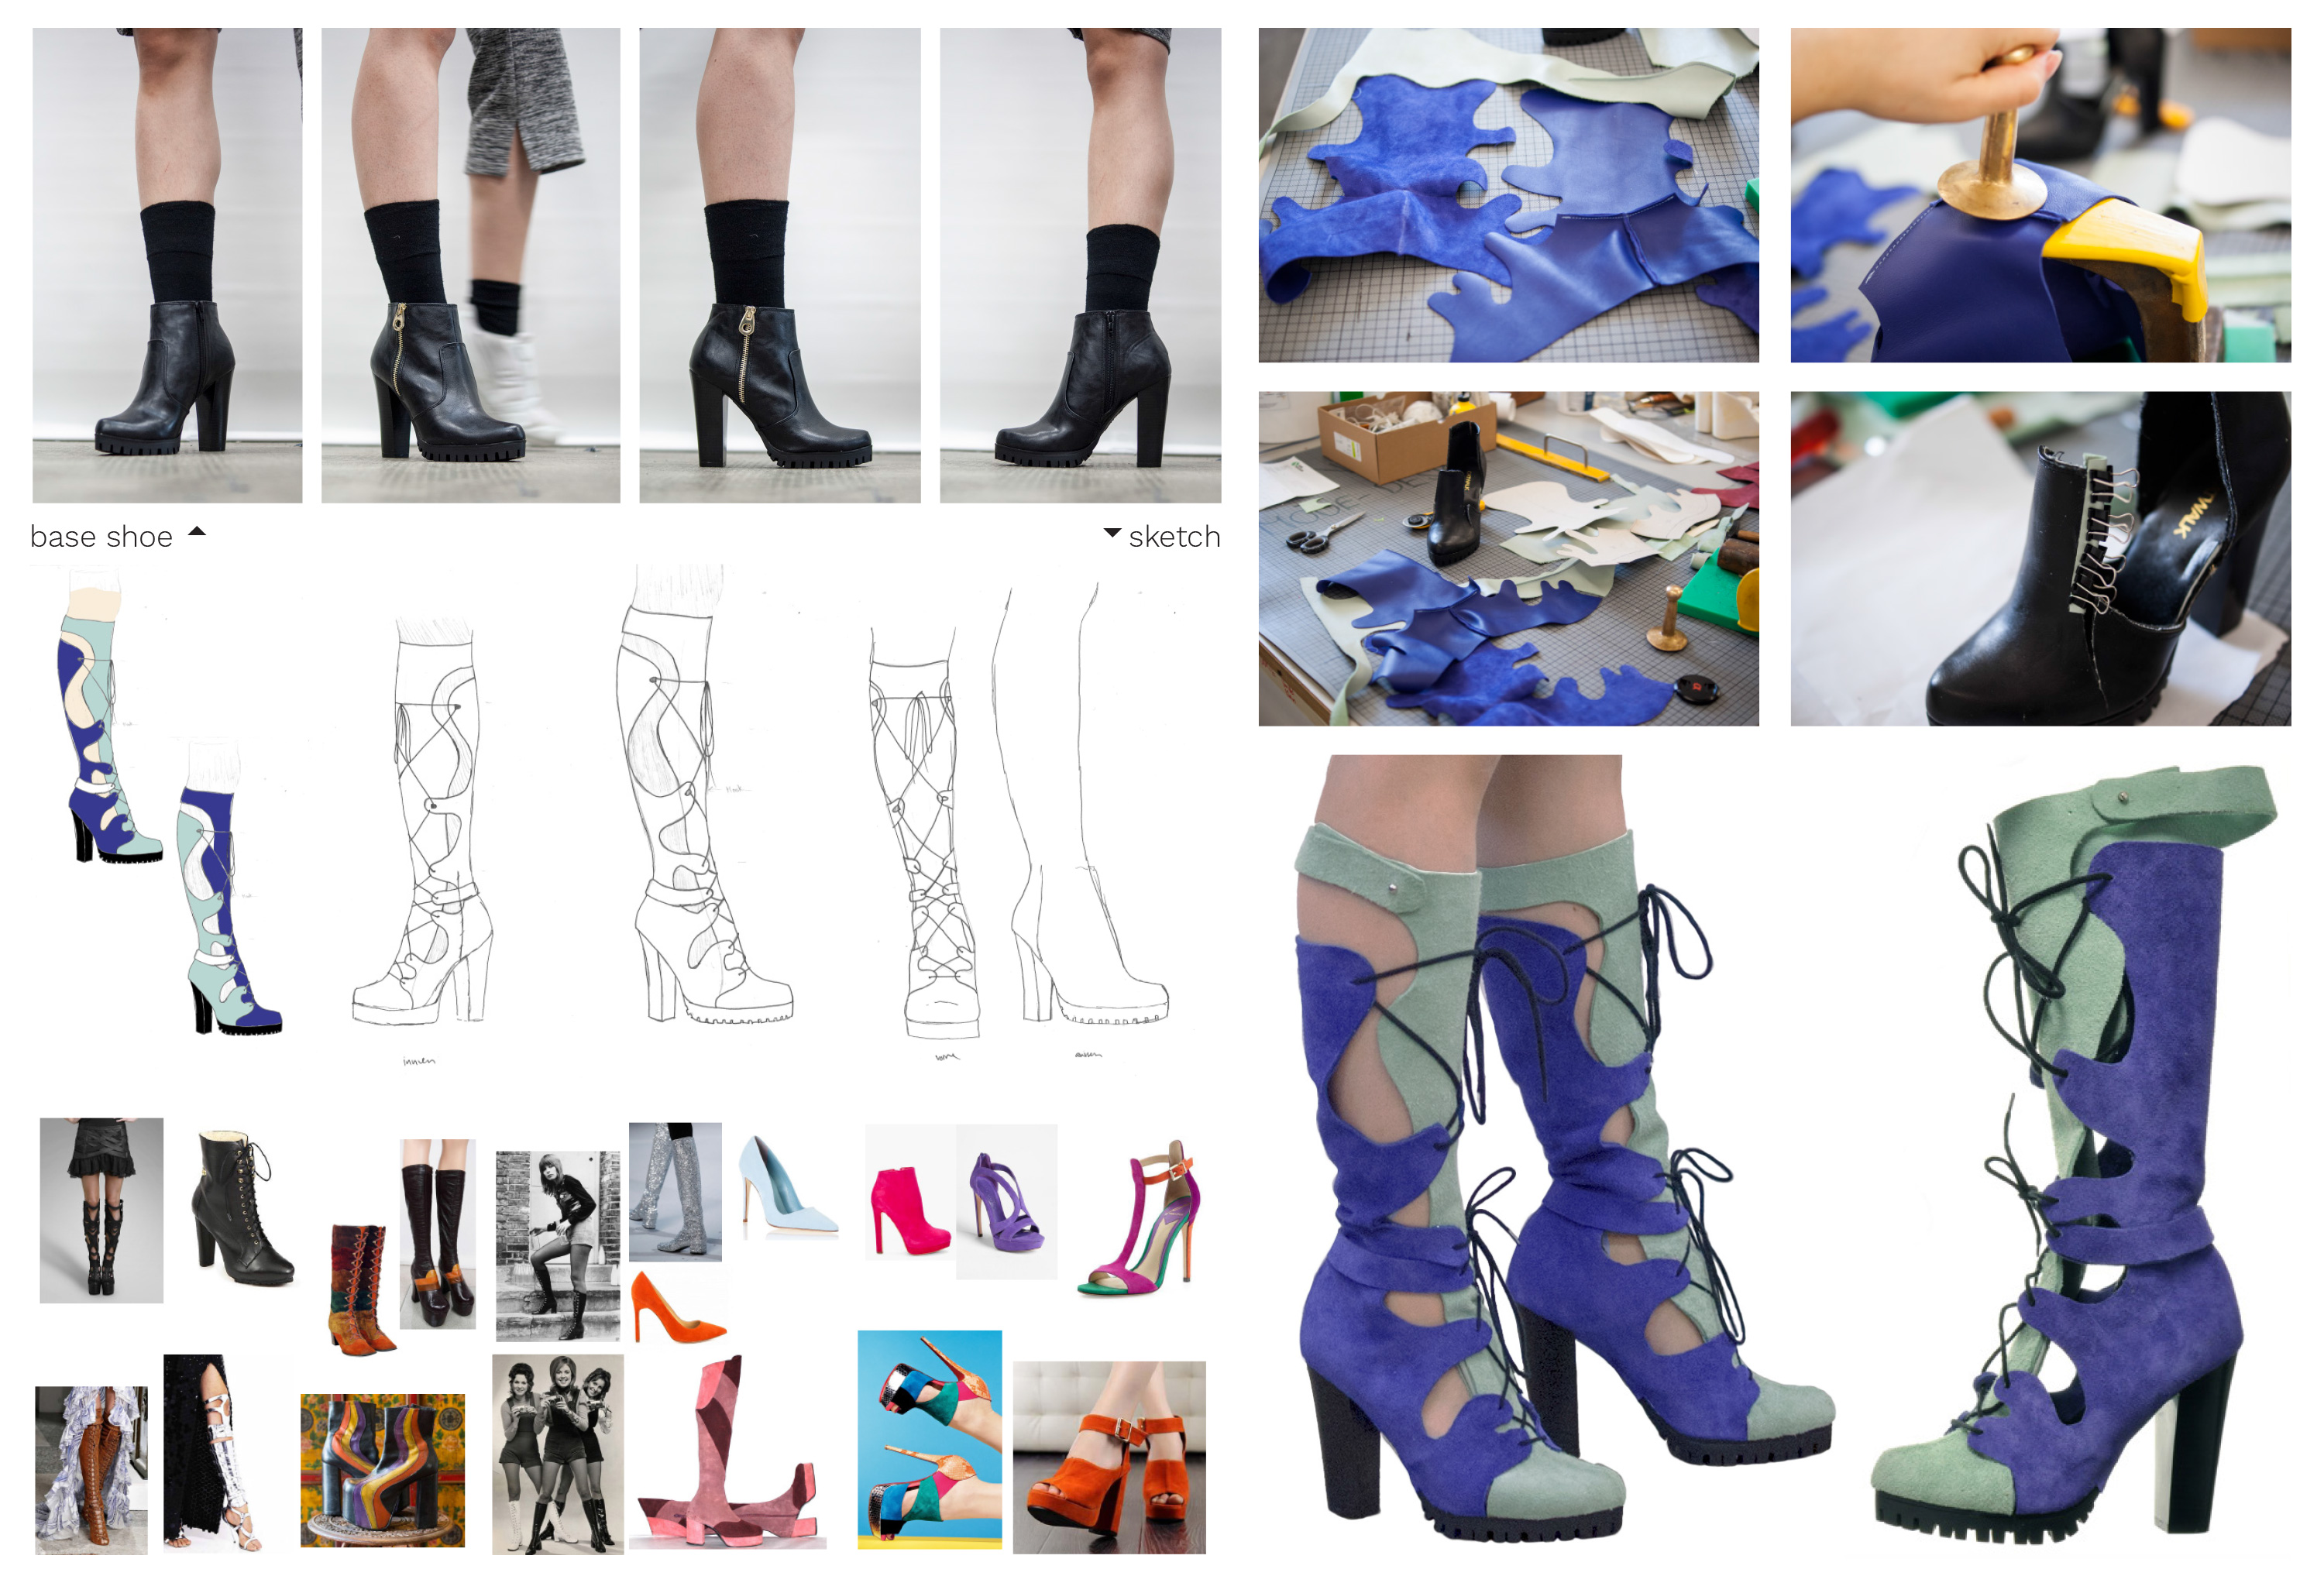 the making of the surreal disco boots, from the original base shoe, to sketches, inspiration images, sewing the leather pieces and the final assembled heeled boots